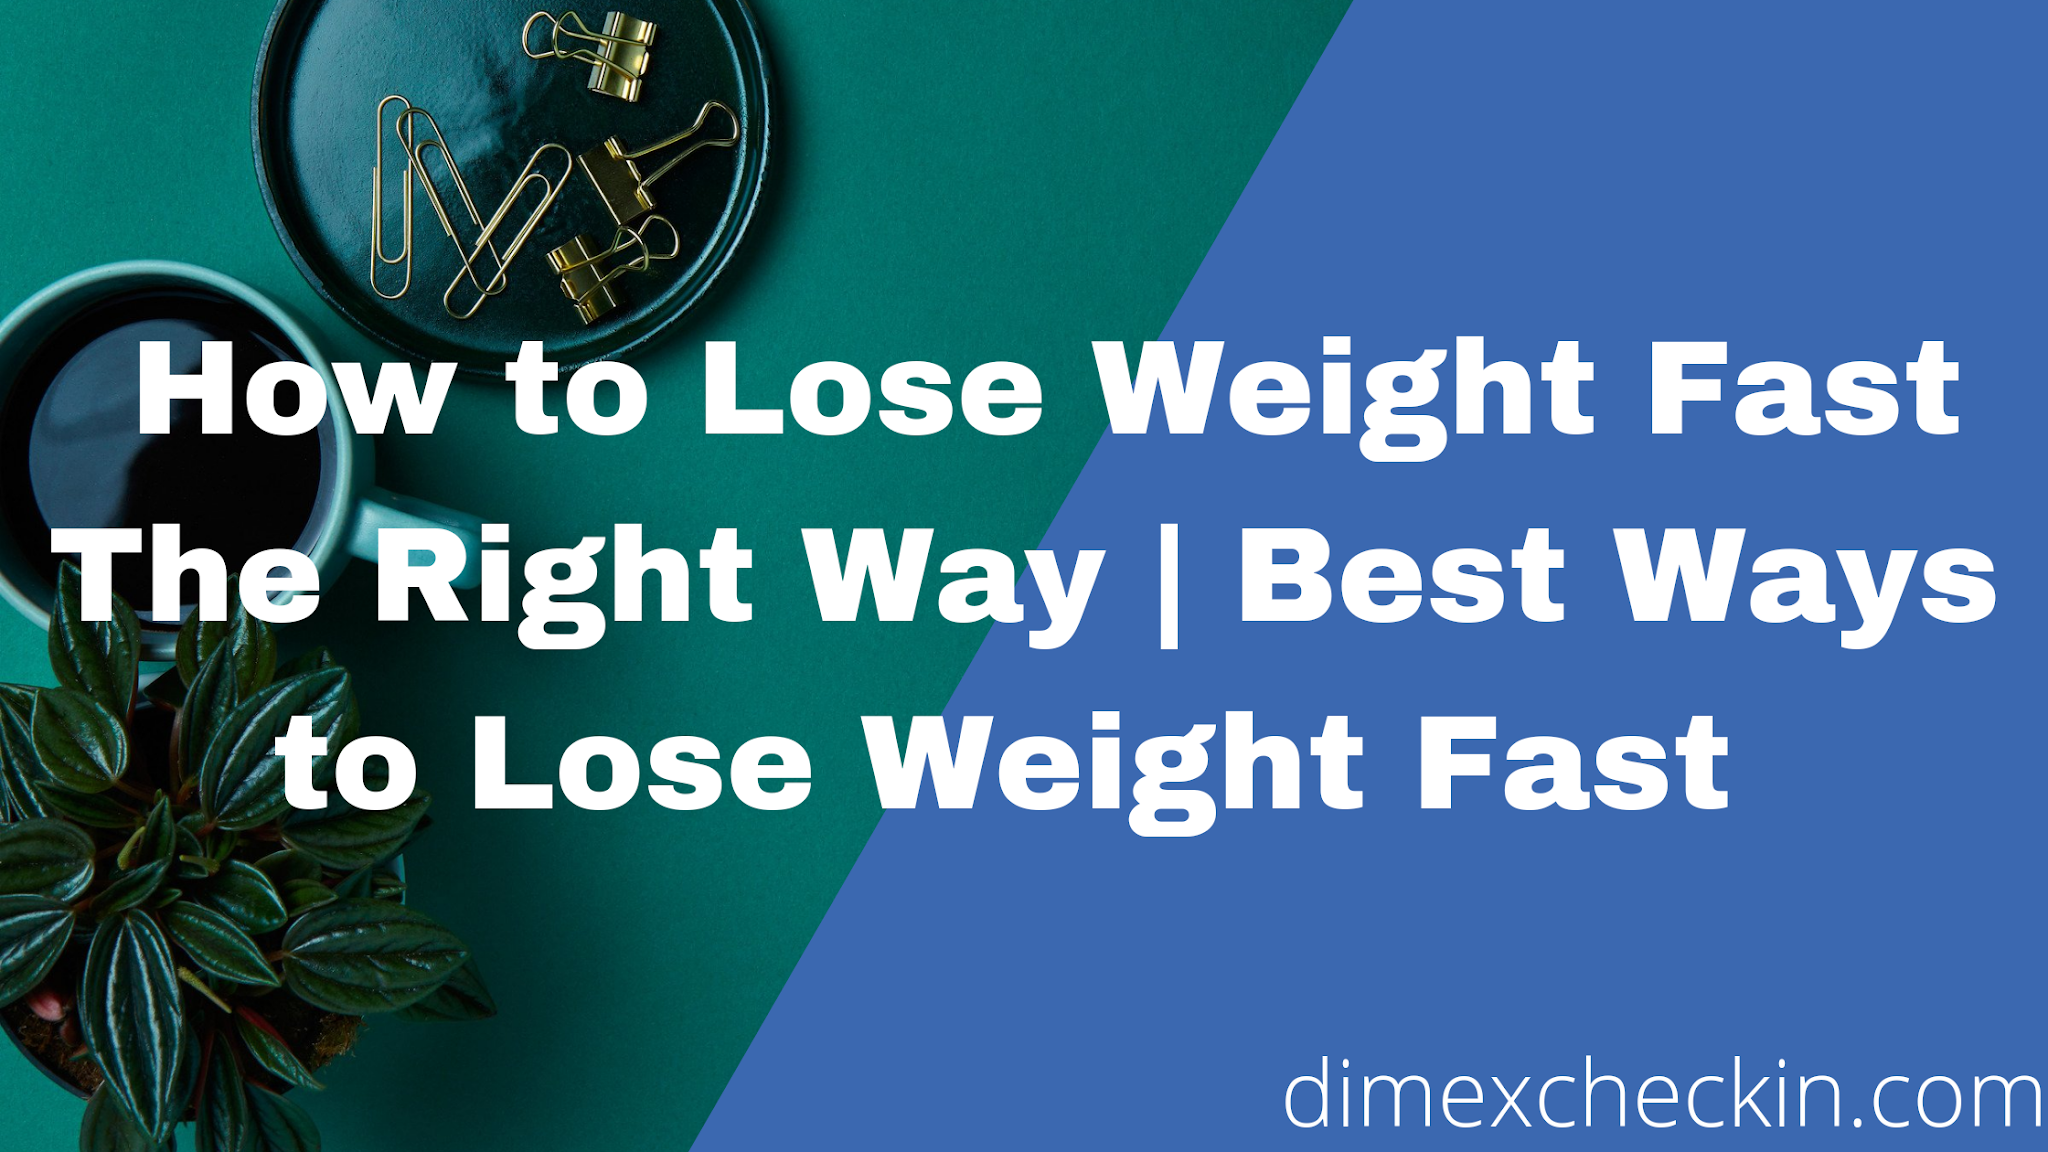 How to Lose Weight Fast The Right Way   Best Ways to Lose Weight Fast